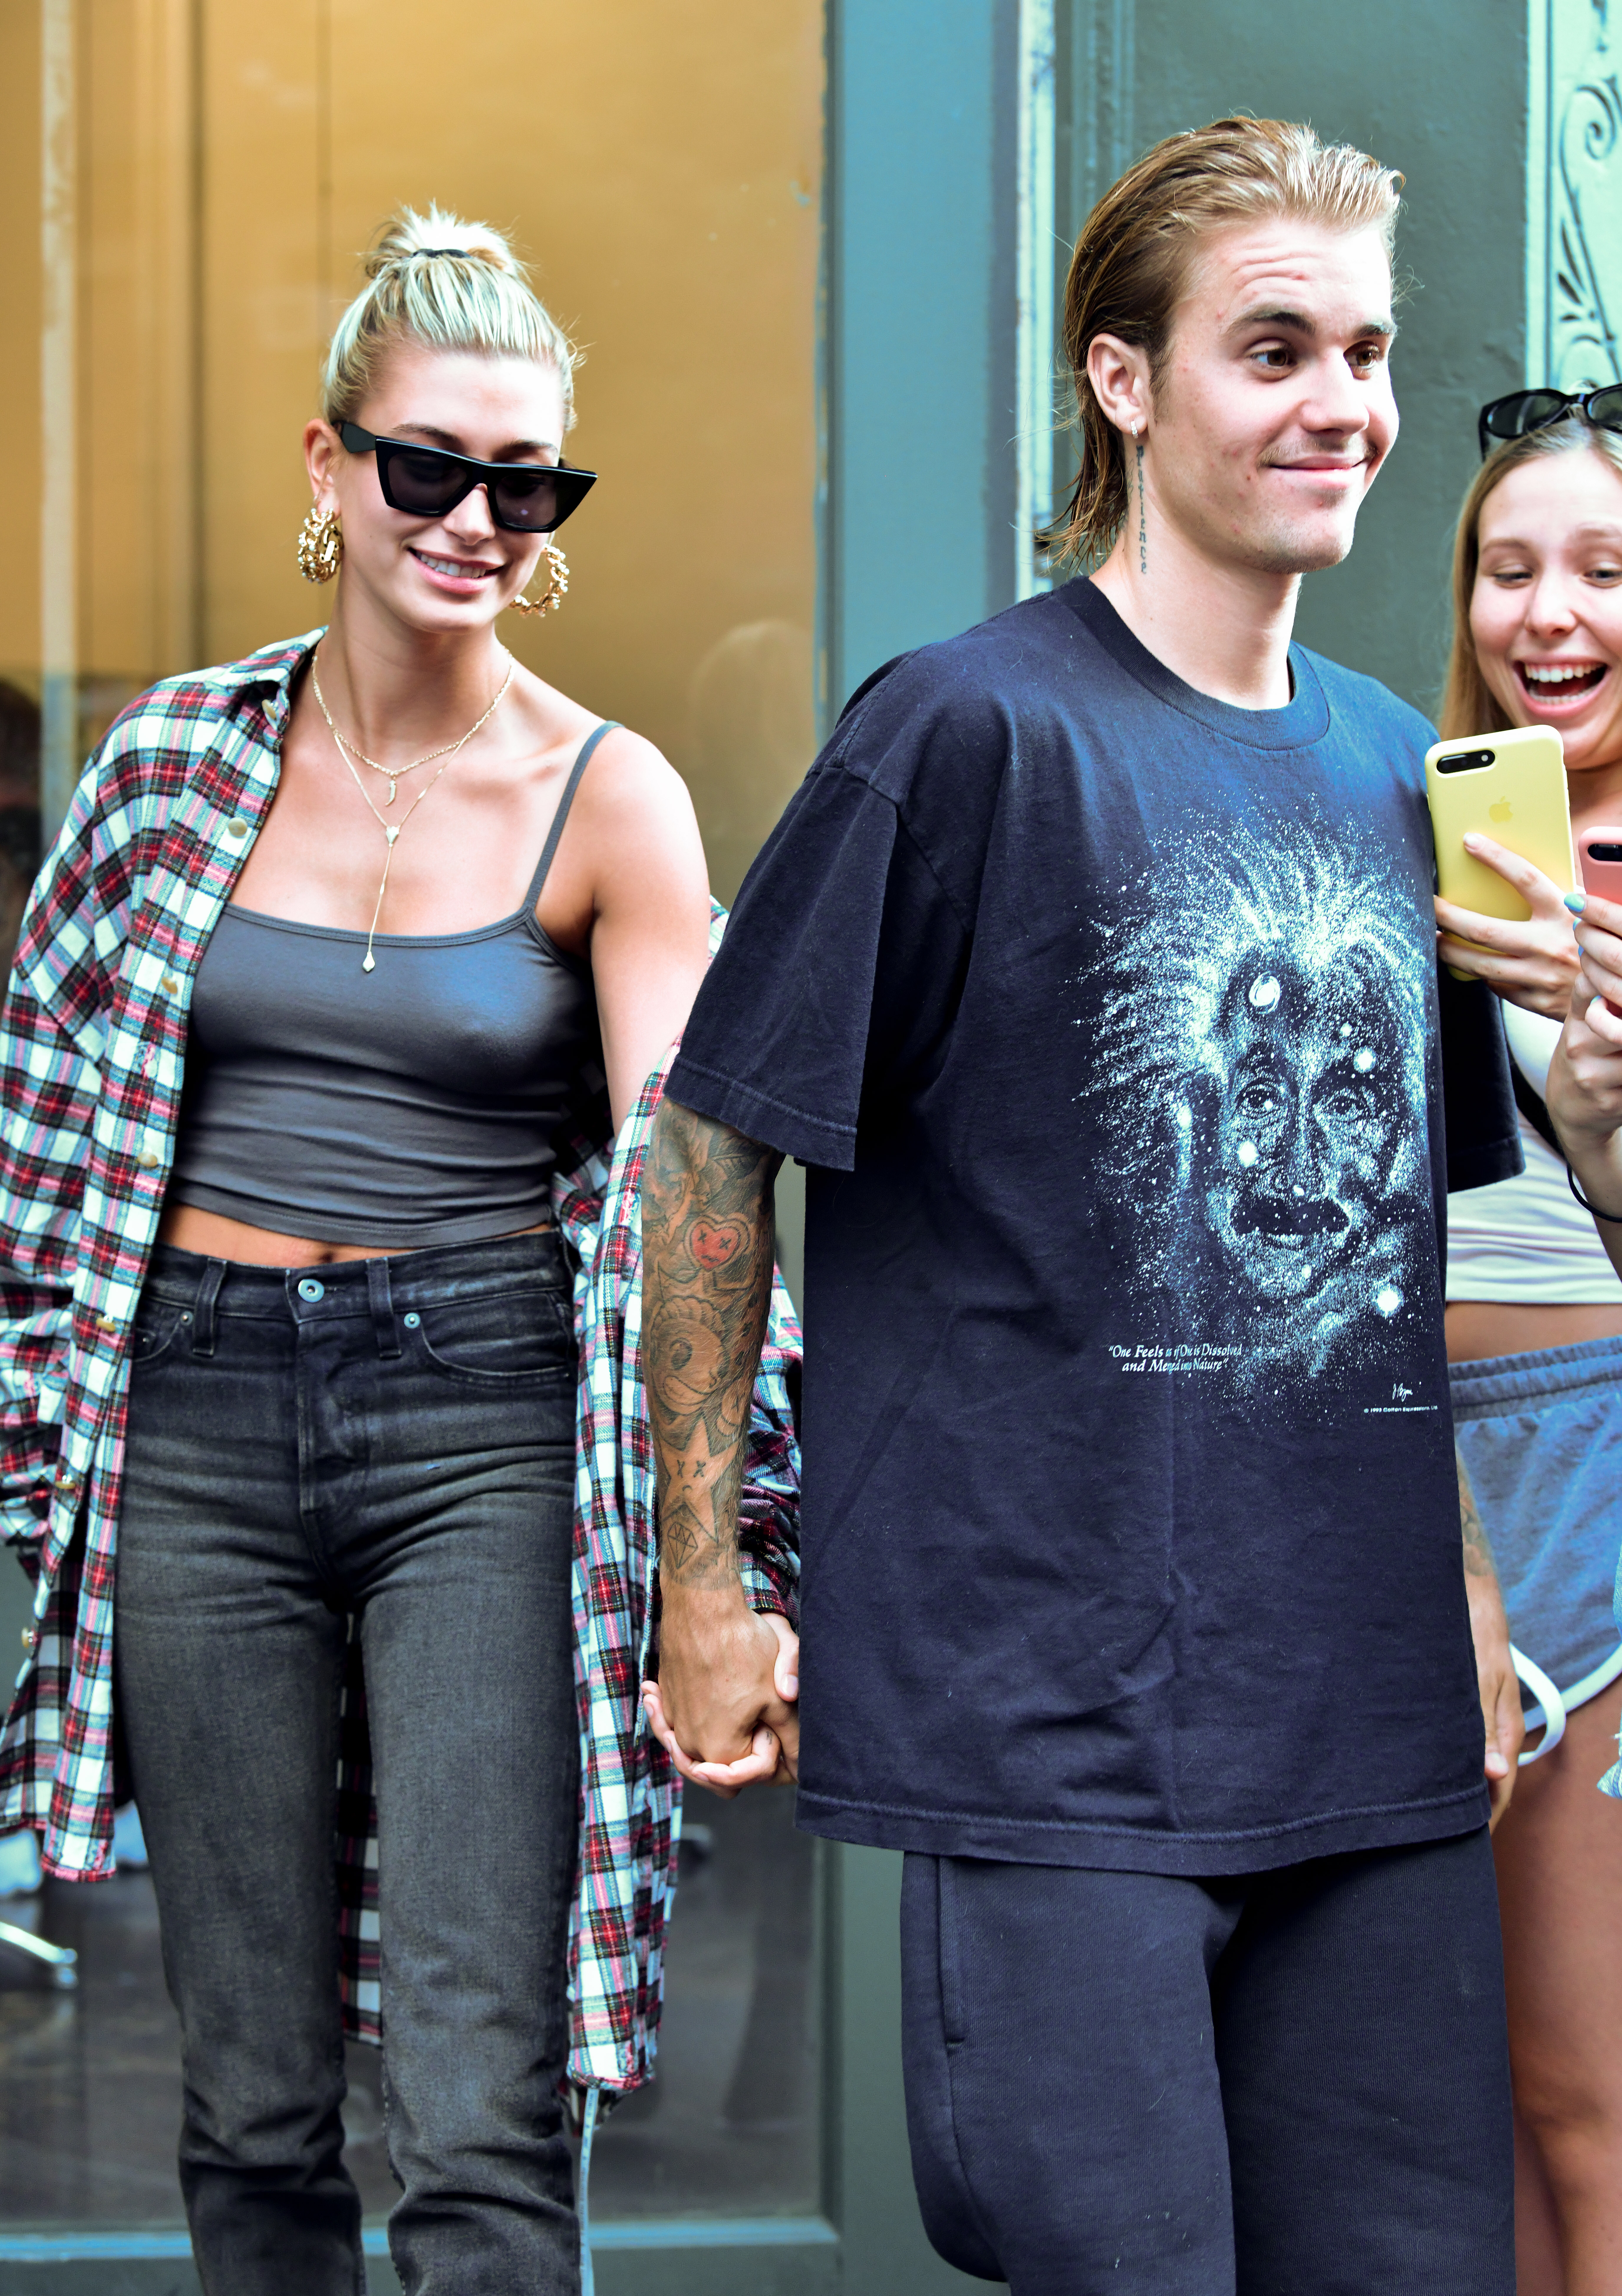 Justin Bieber and Hailey Baldwin are seen on August 8, 2018 in New York City